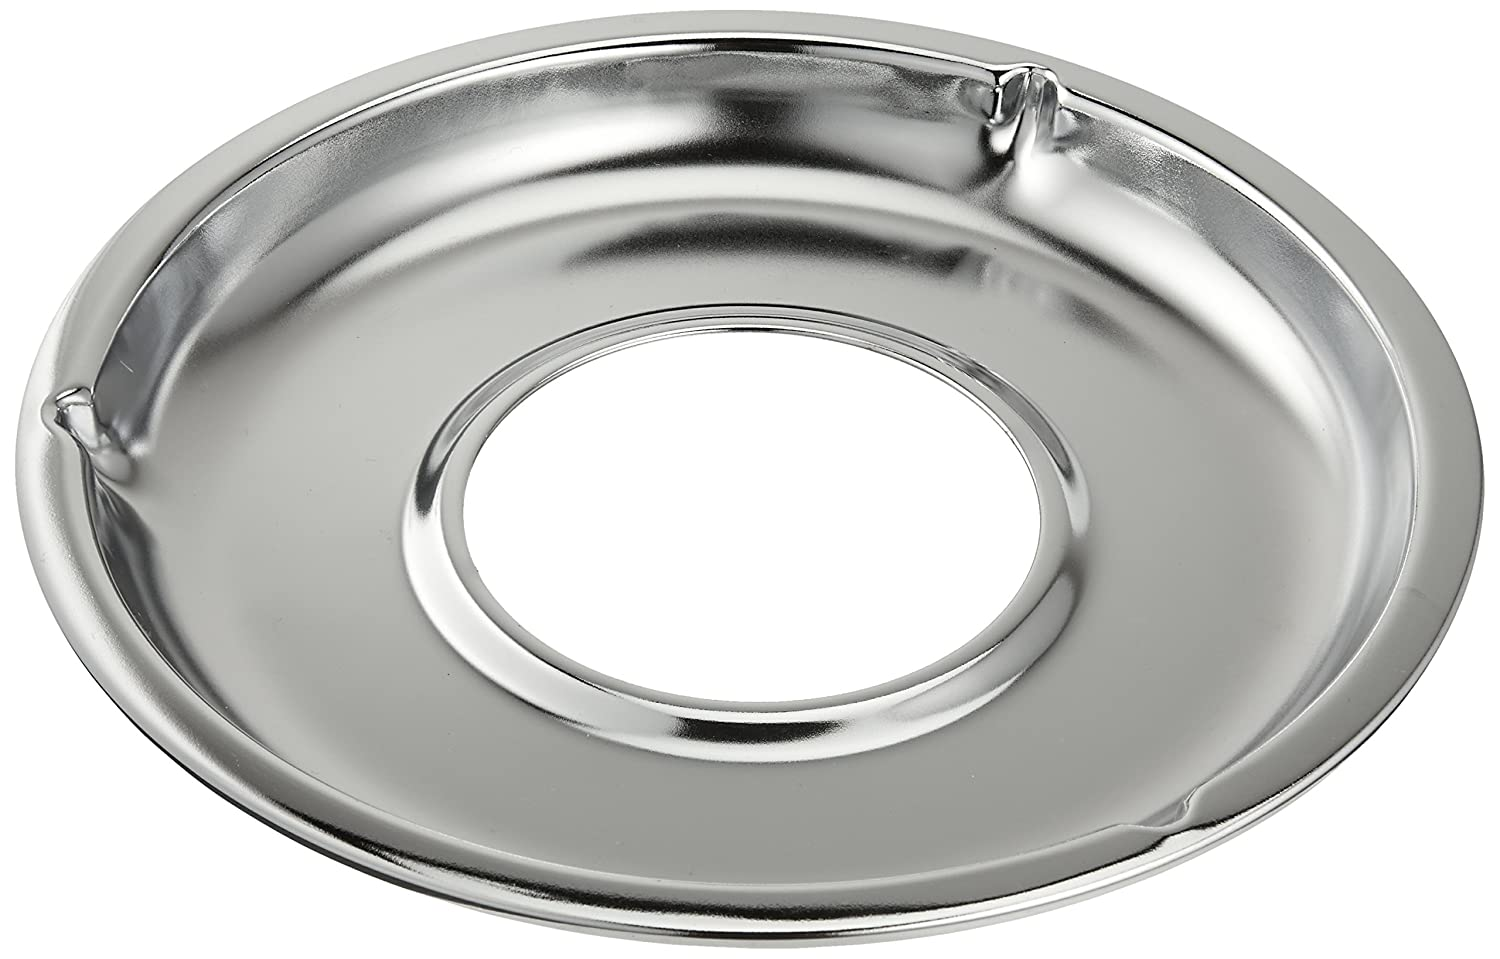 GE WB31K5026 9-Inch Gas Burner Drip Bowl